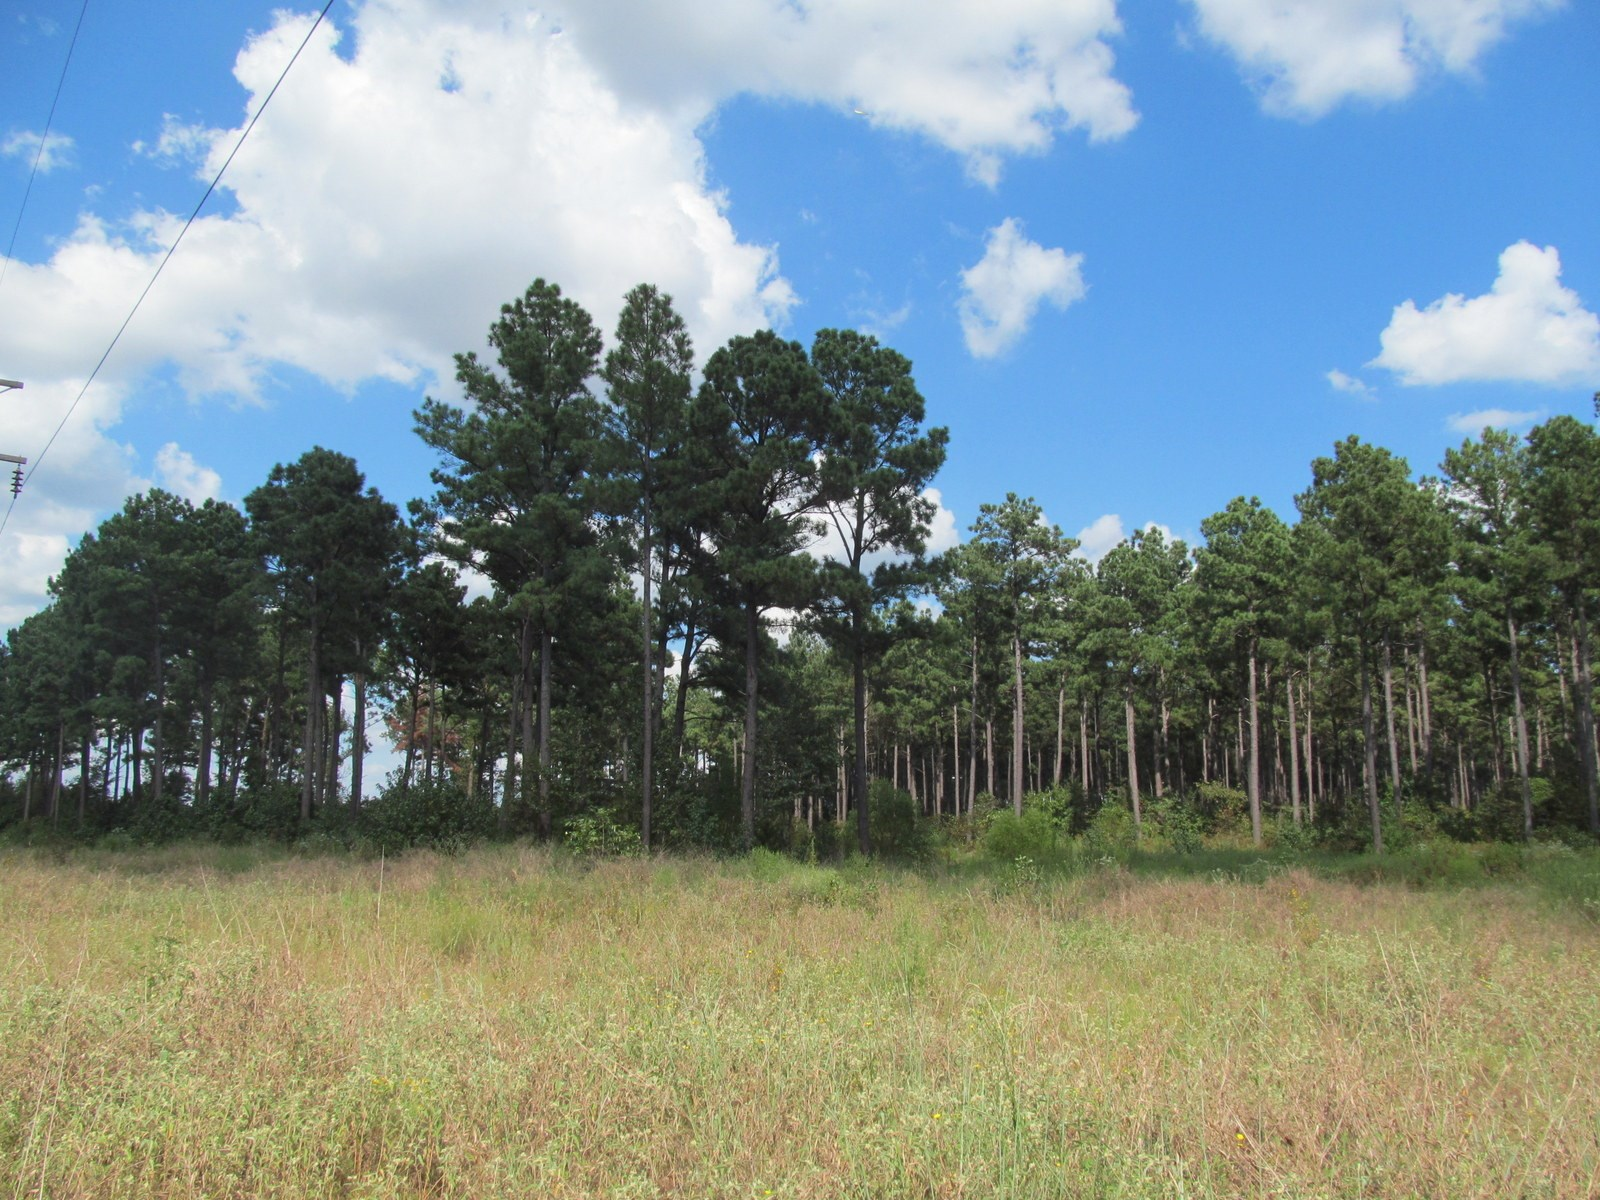 99 ACRE TEXAS PINE TREE FARM - CAMP COUNTY TEXAS - PITTSBURG